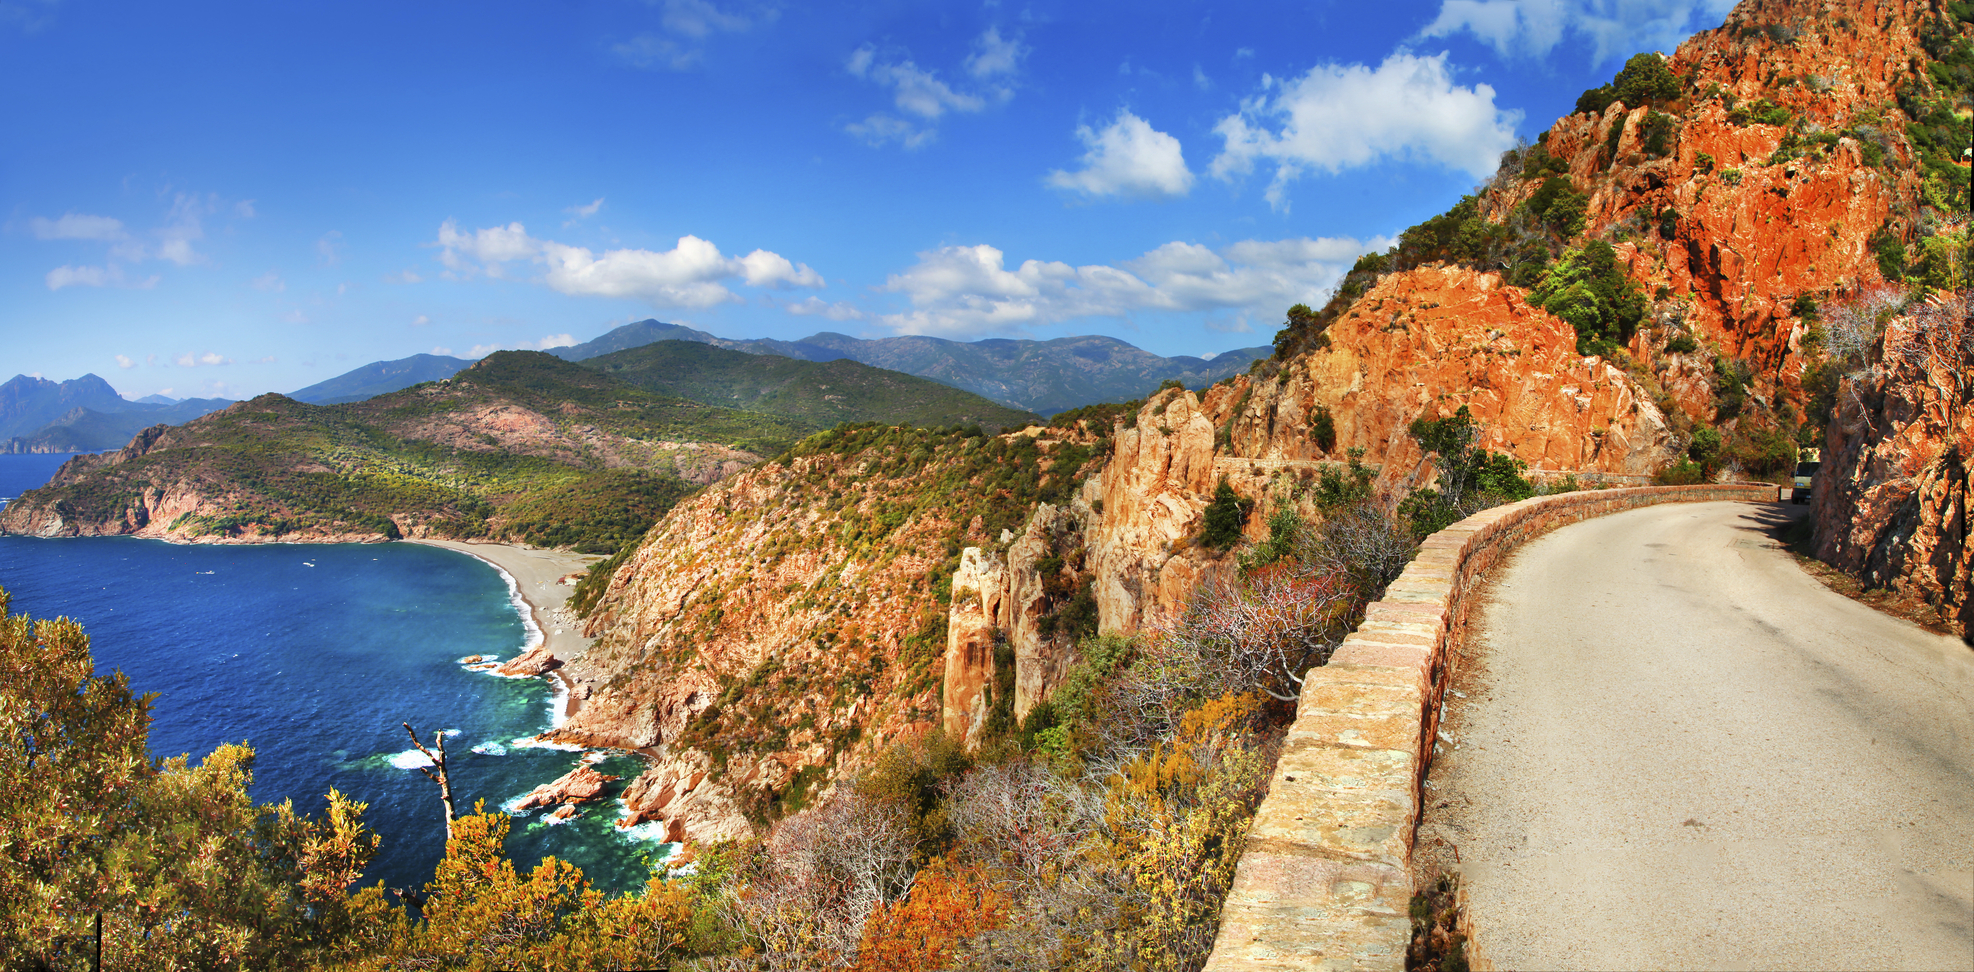 Red rocks in Corsica island,France.